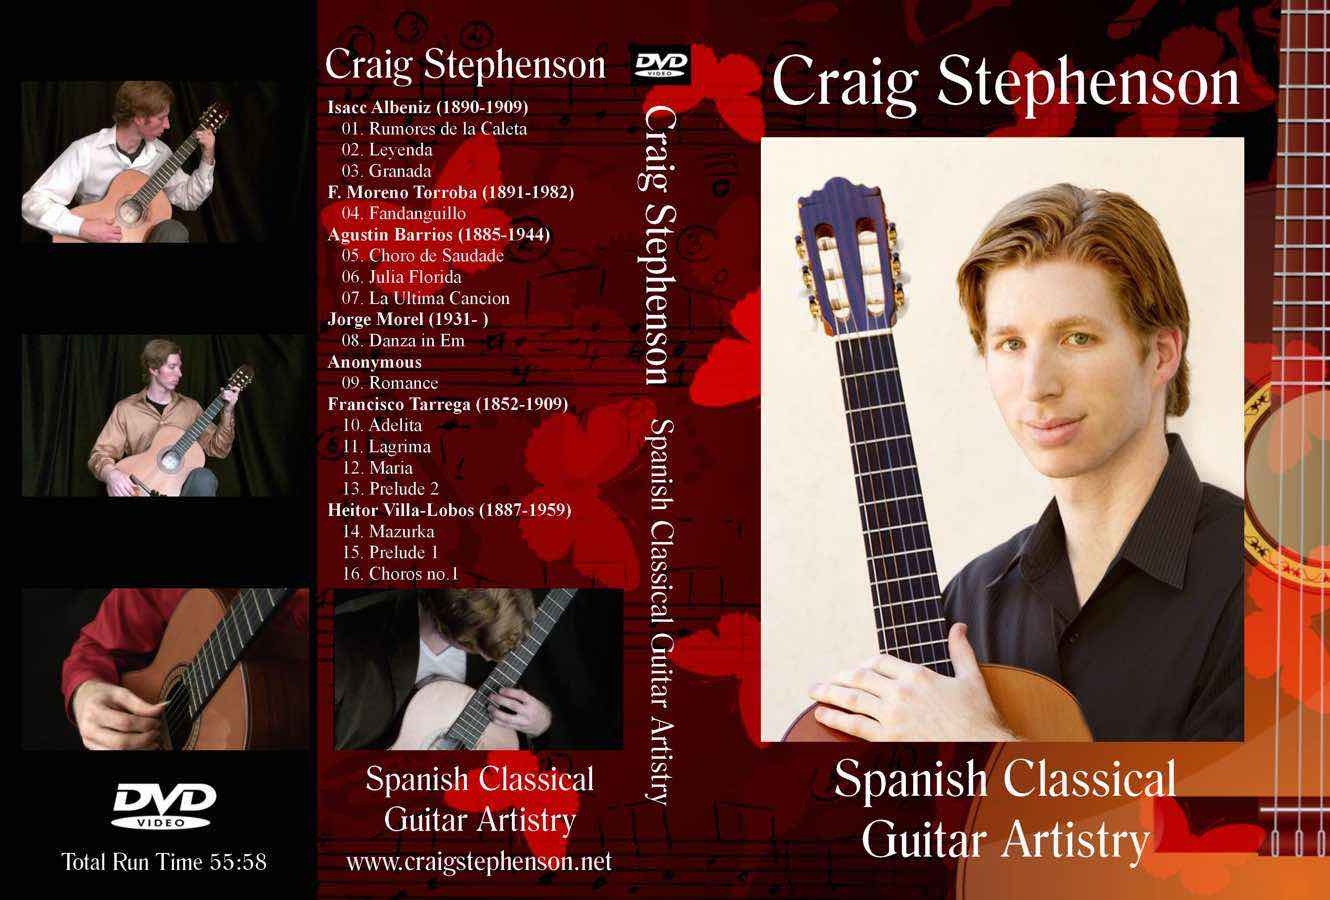 Video - Click here to watch Craig's performance clips from his 2013 DVD